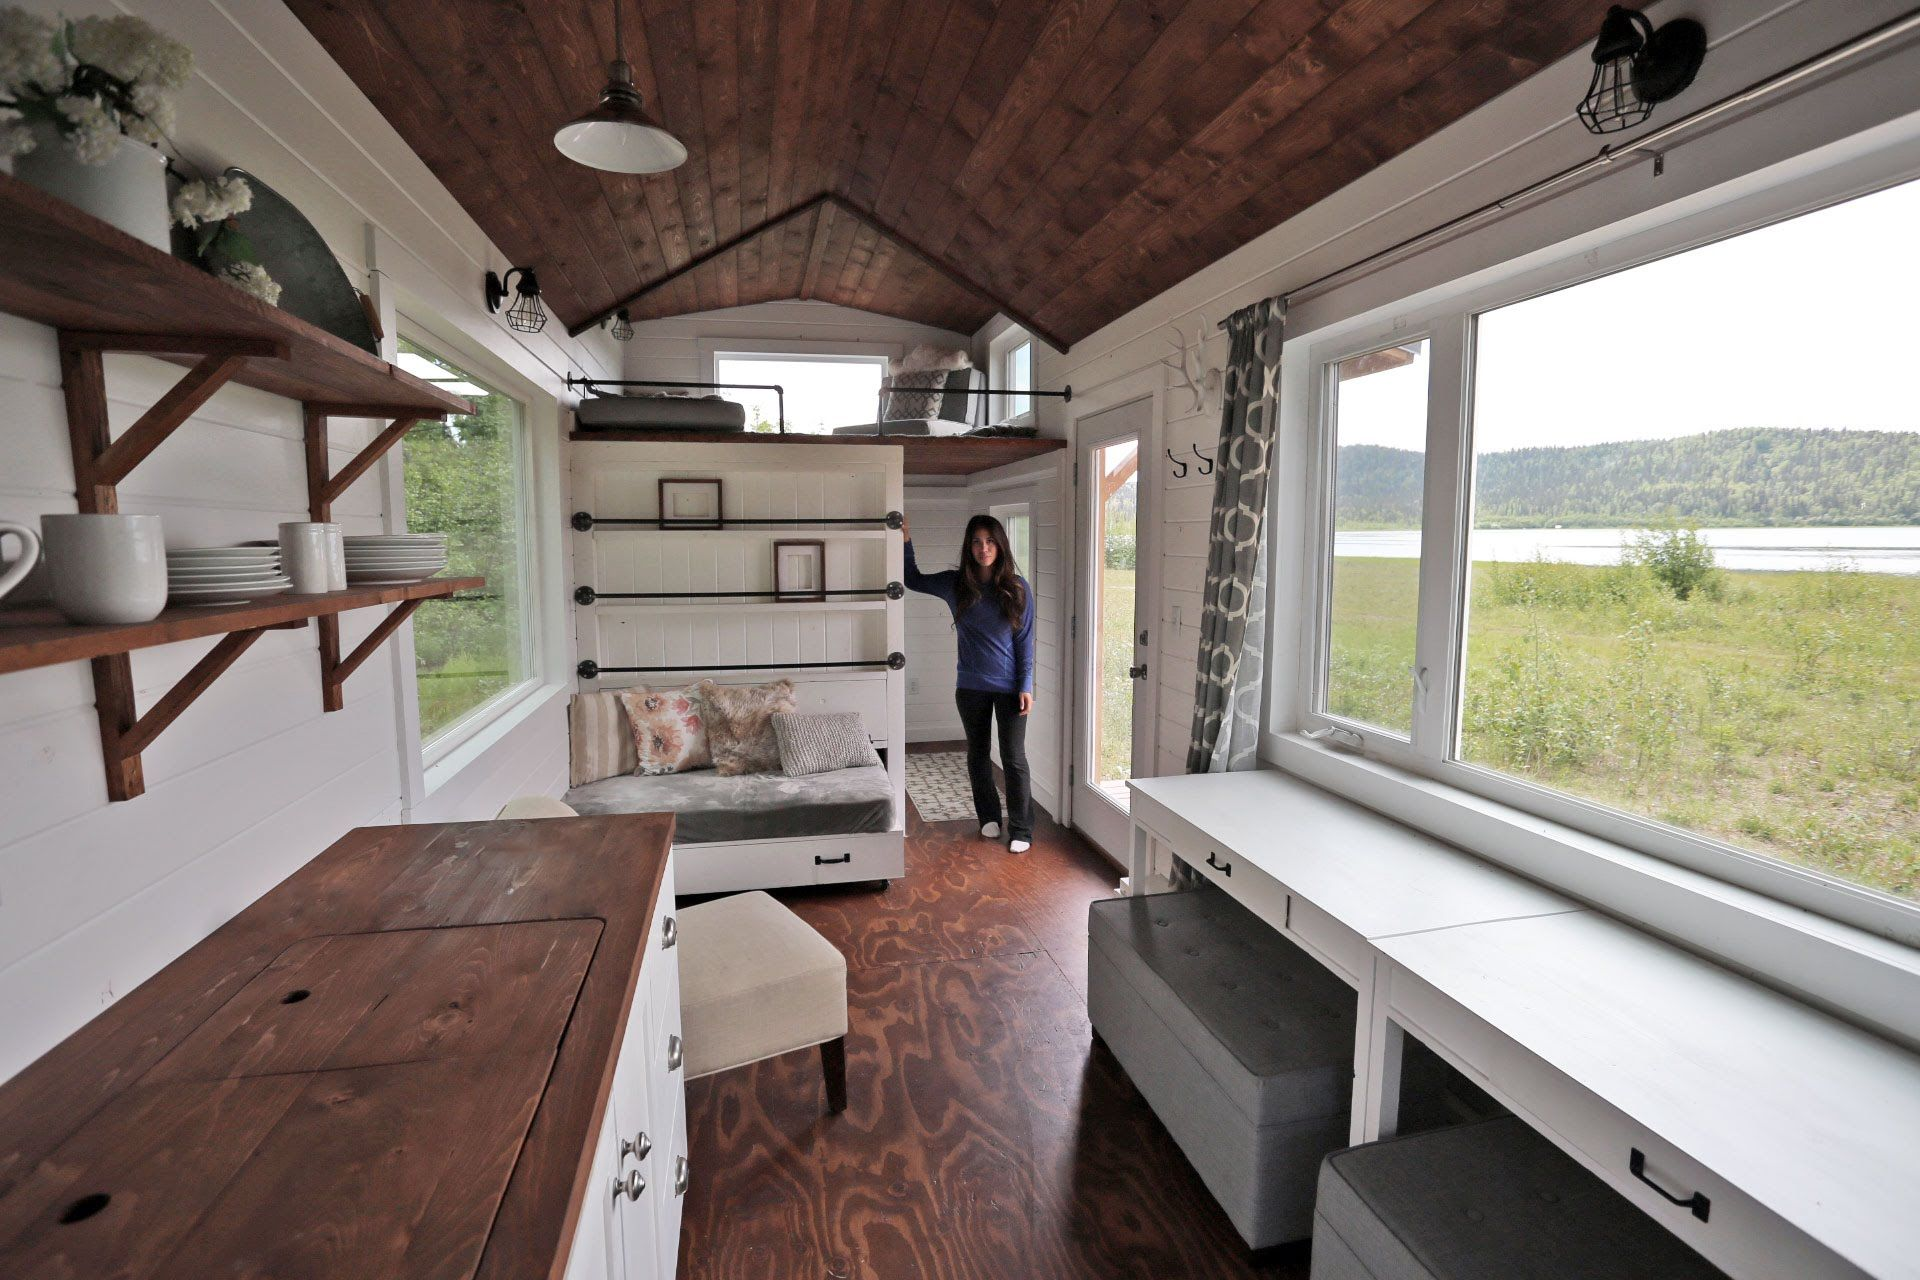 Beautiful 24 Foot Tiny House Tour with Free Plans Ana White Tiny – 24 Foot Tiny House Floor Plans